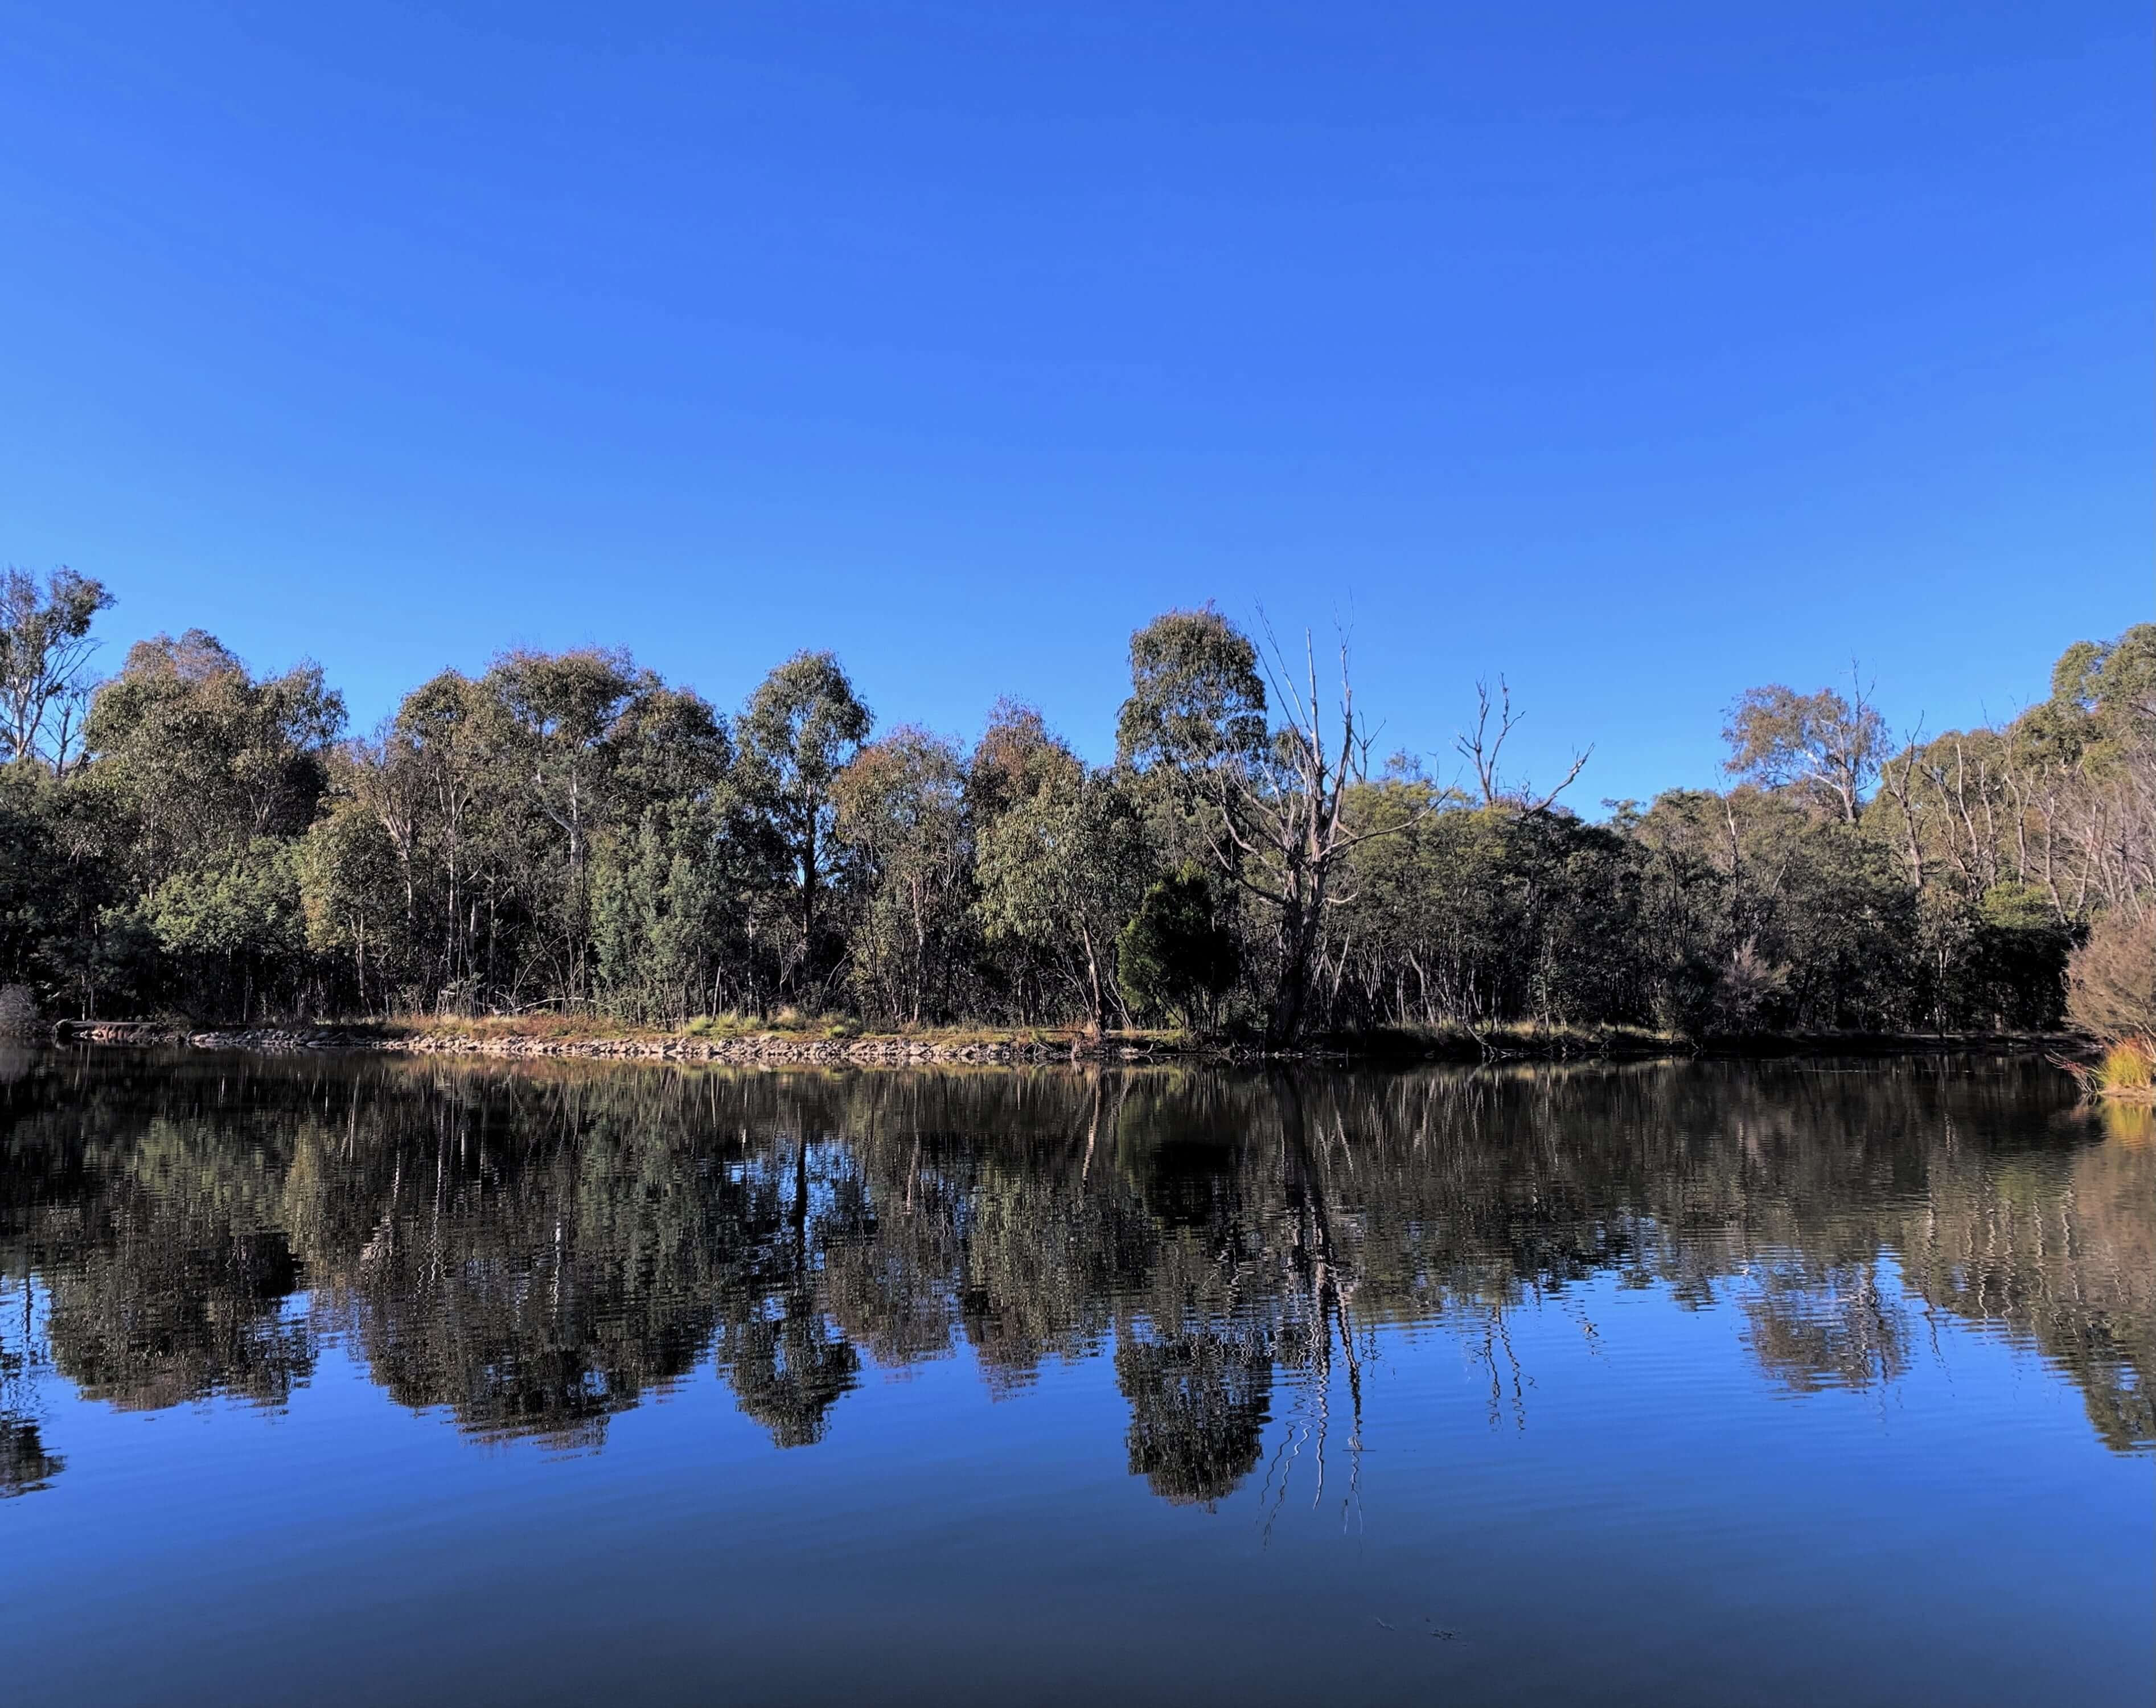 trees and bushes reflected on a lake, Tidbinbilla National park, Canberra